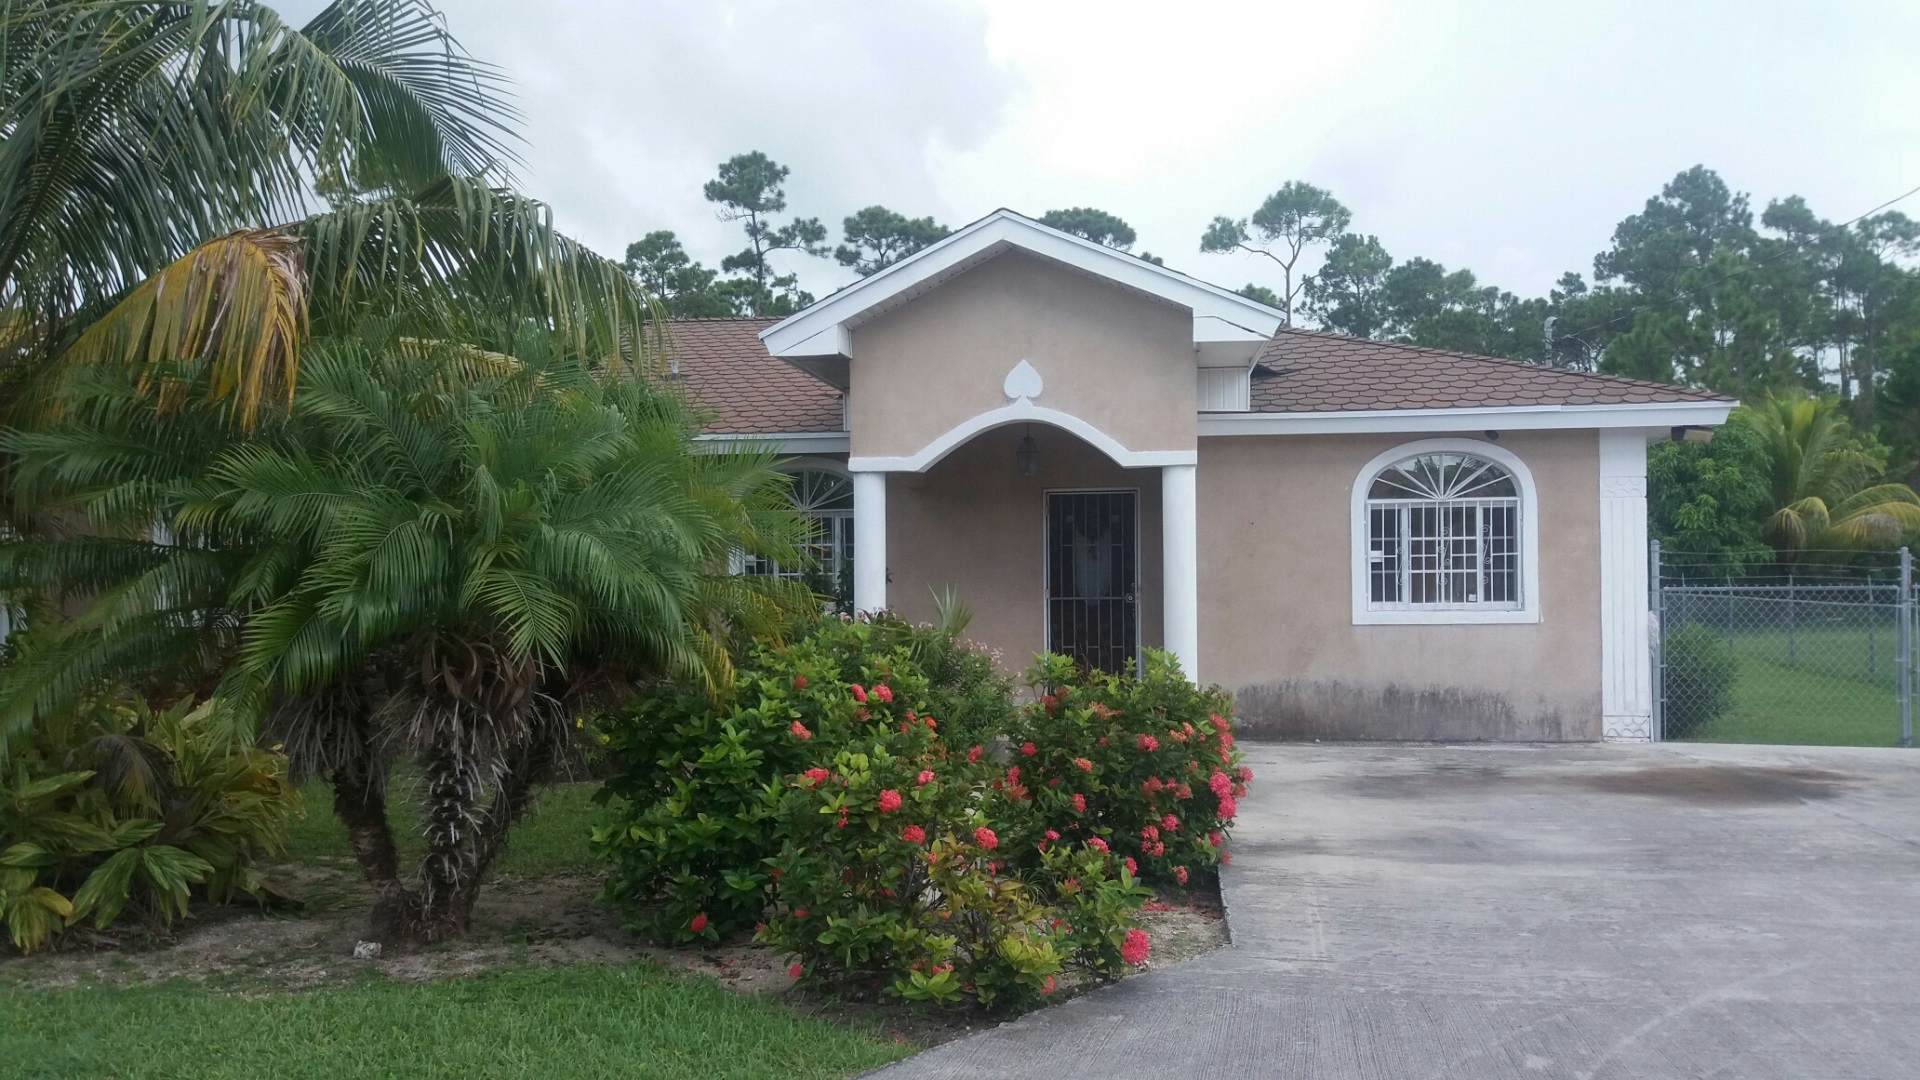 Single Family Home for Sale at Nice Cozy Single Family Home, Imperial Park, Freeport MLS 29126 Imperial Park, Grand Bahama, Bahamas